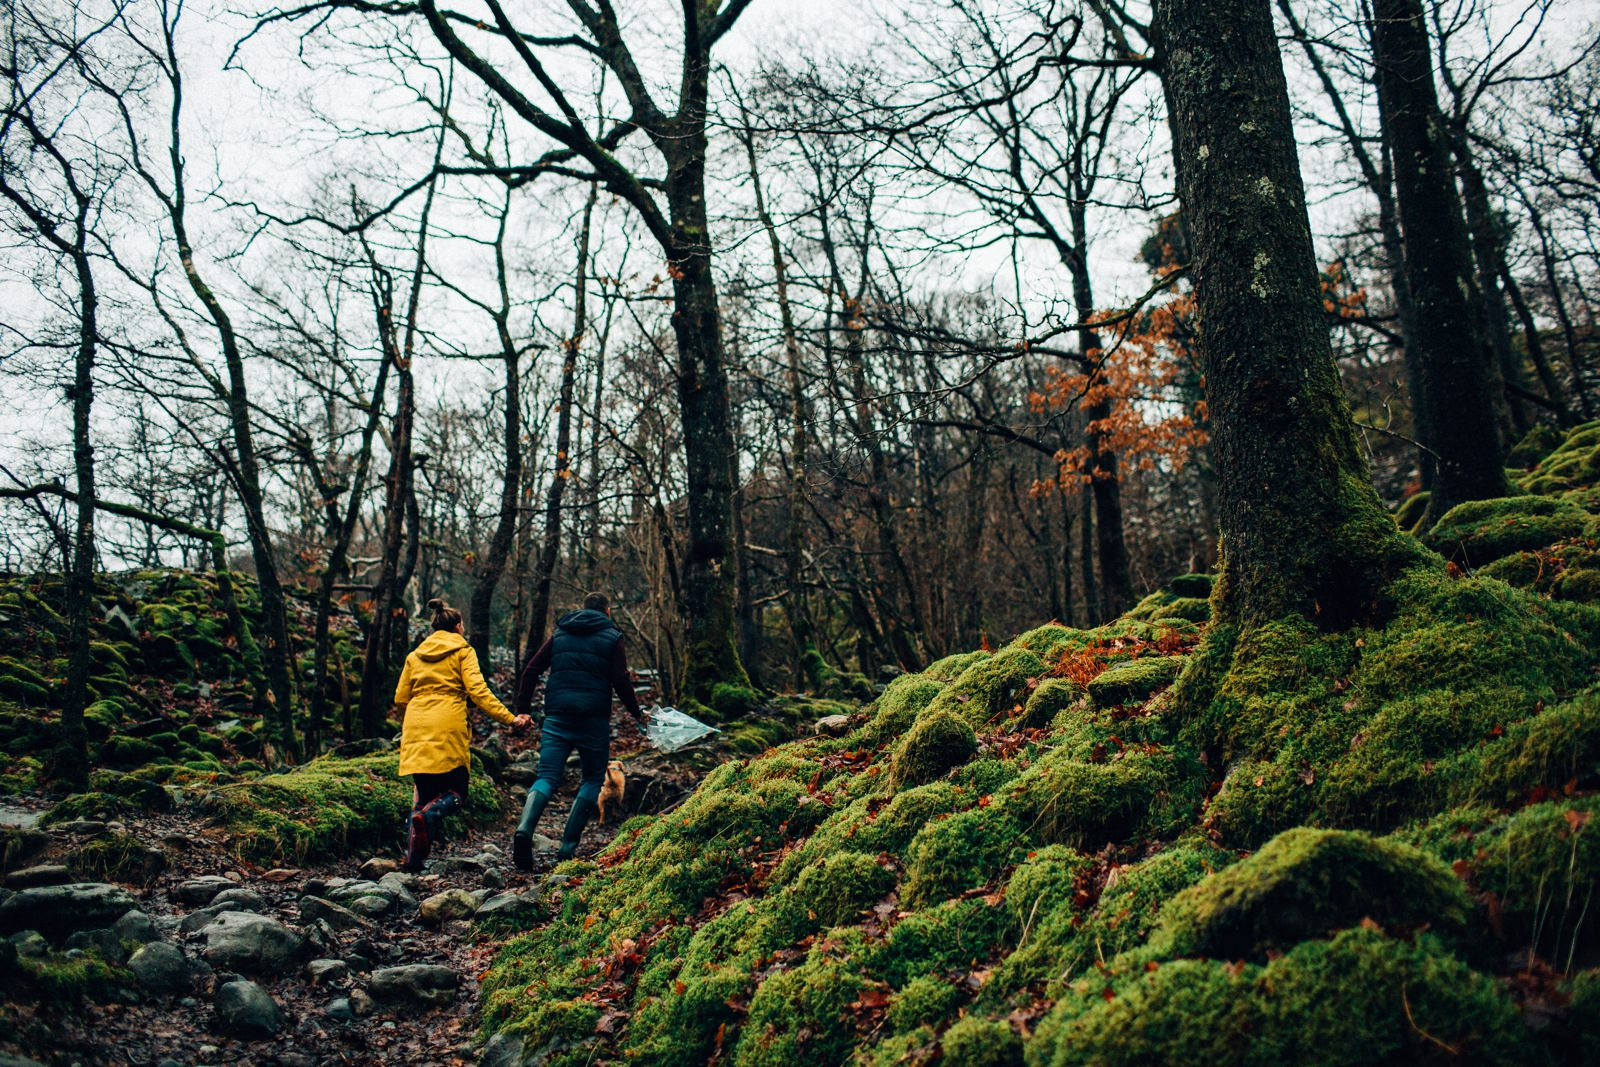 hiking through the woods covered with green moss with the couple